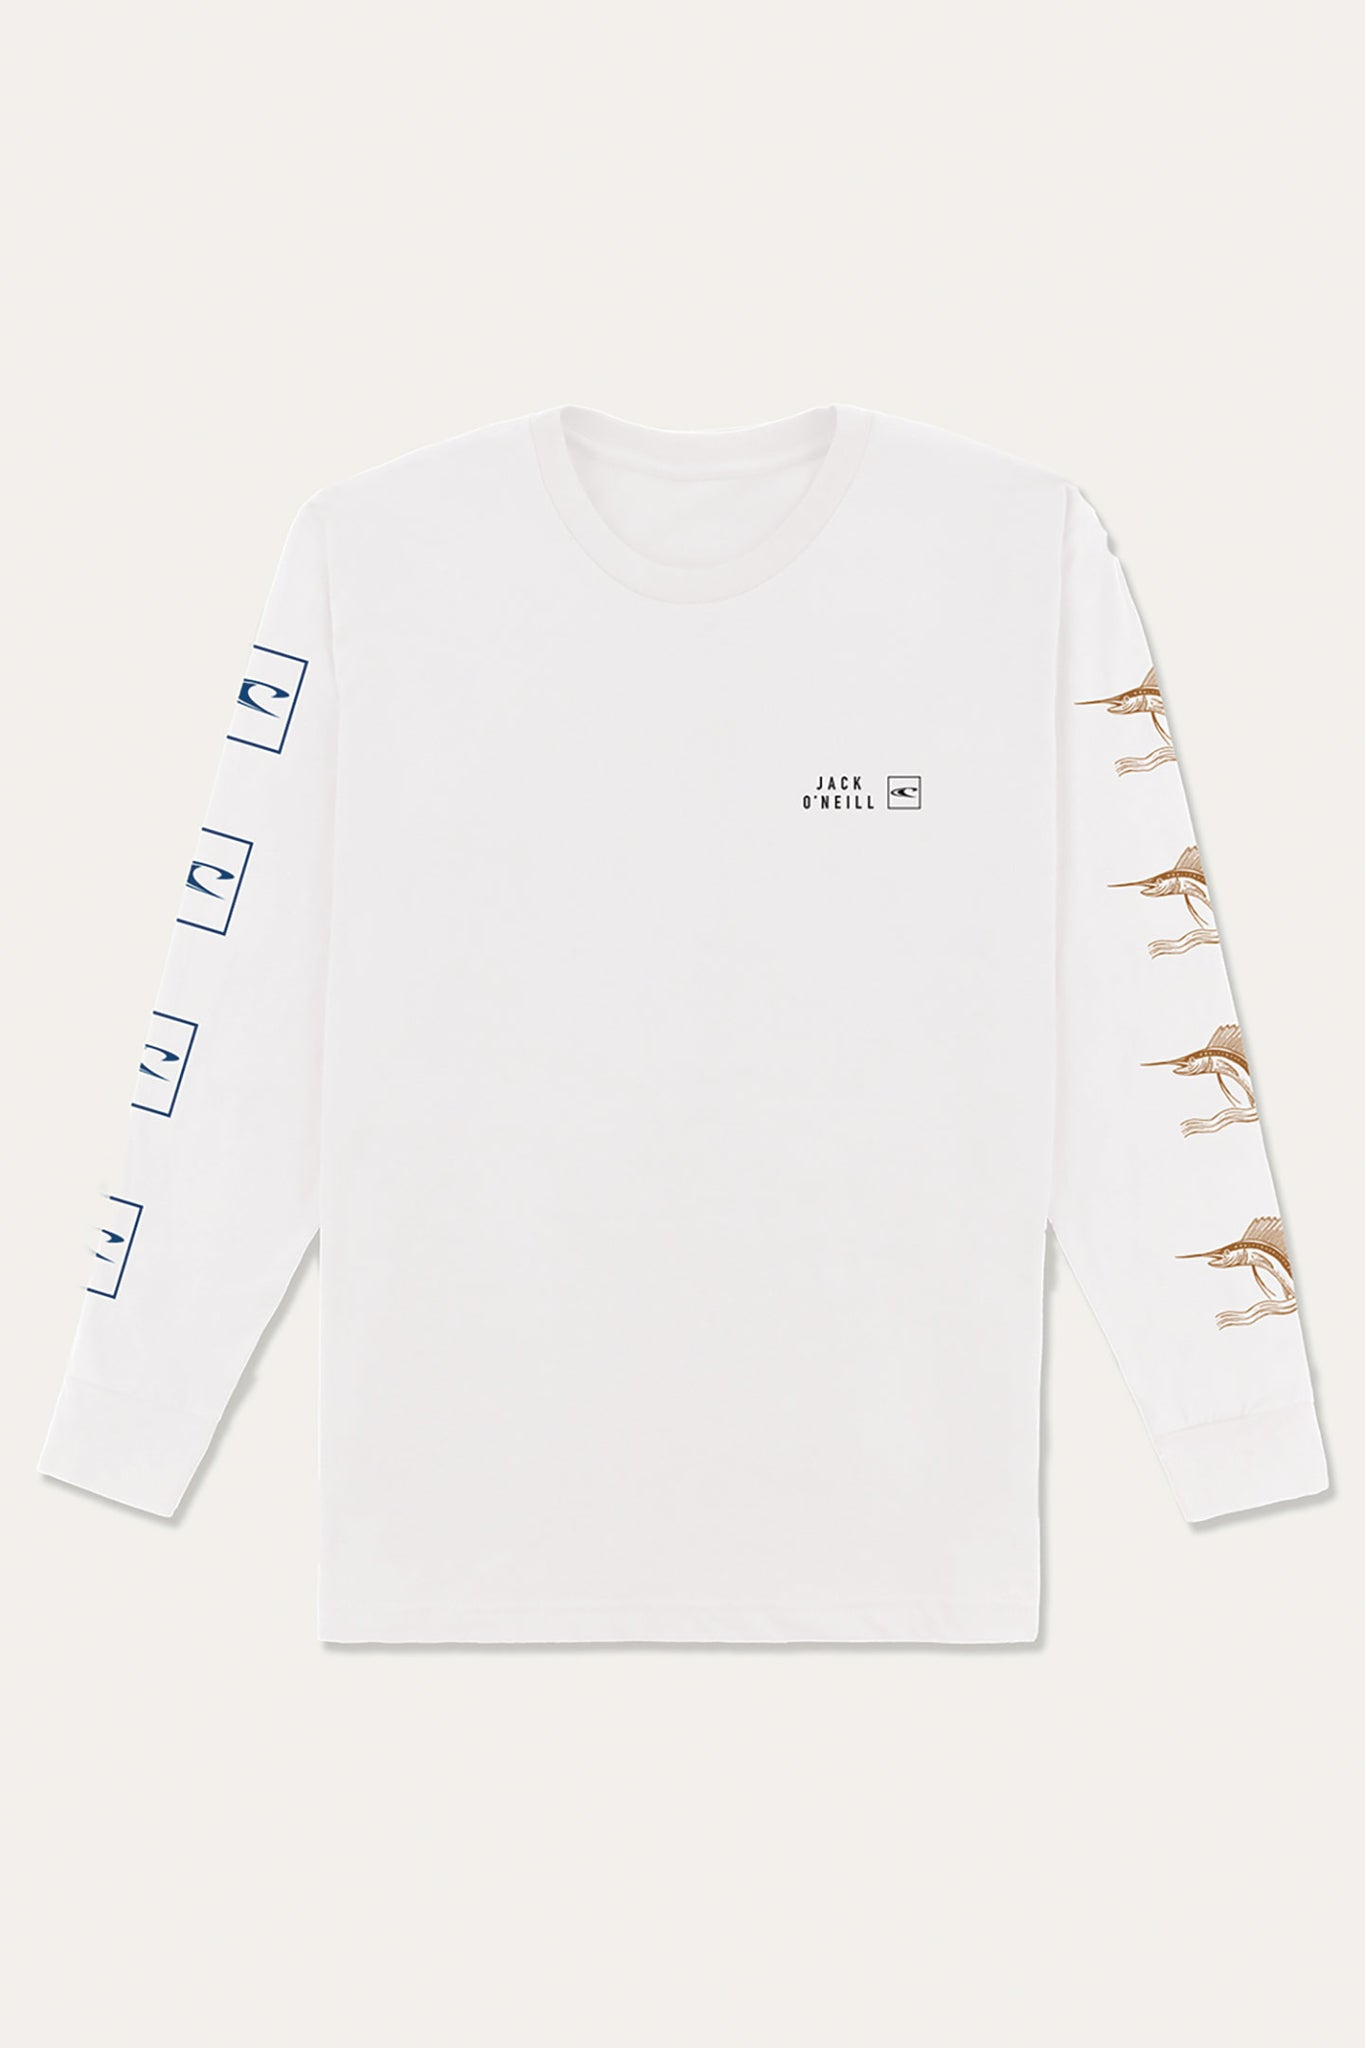 Jack O'Neill Ring Ring Long Sleeve Tee - White | O'Neill